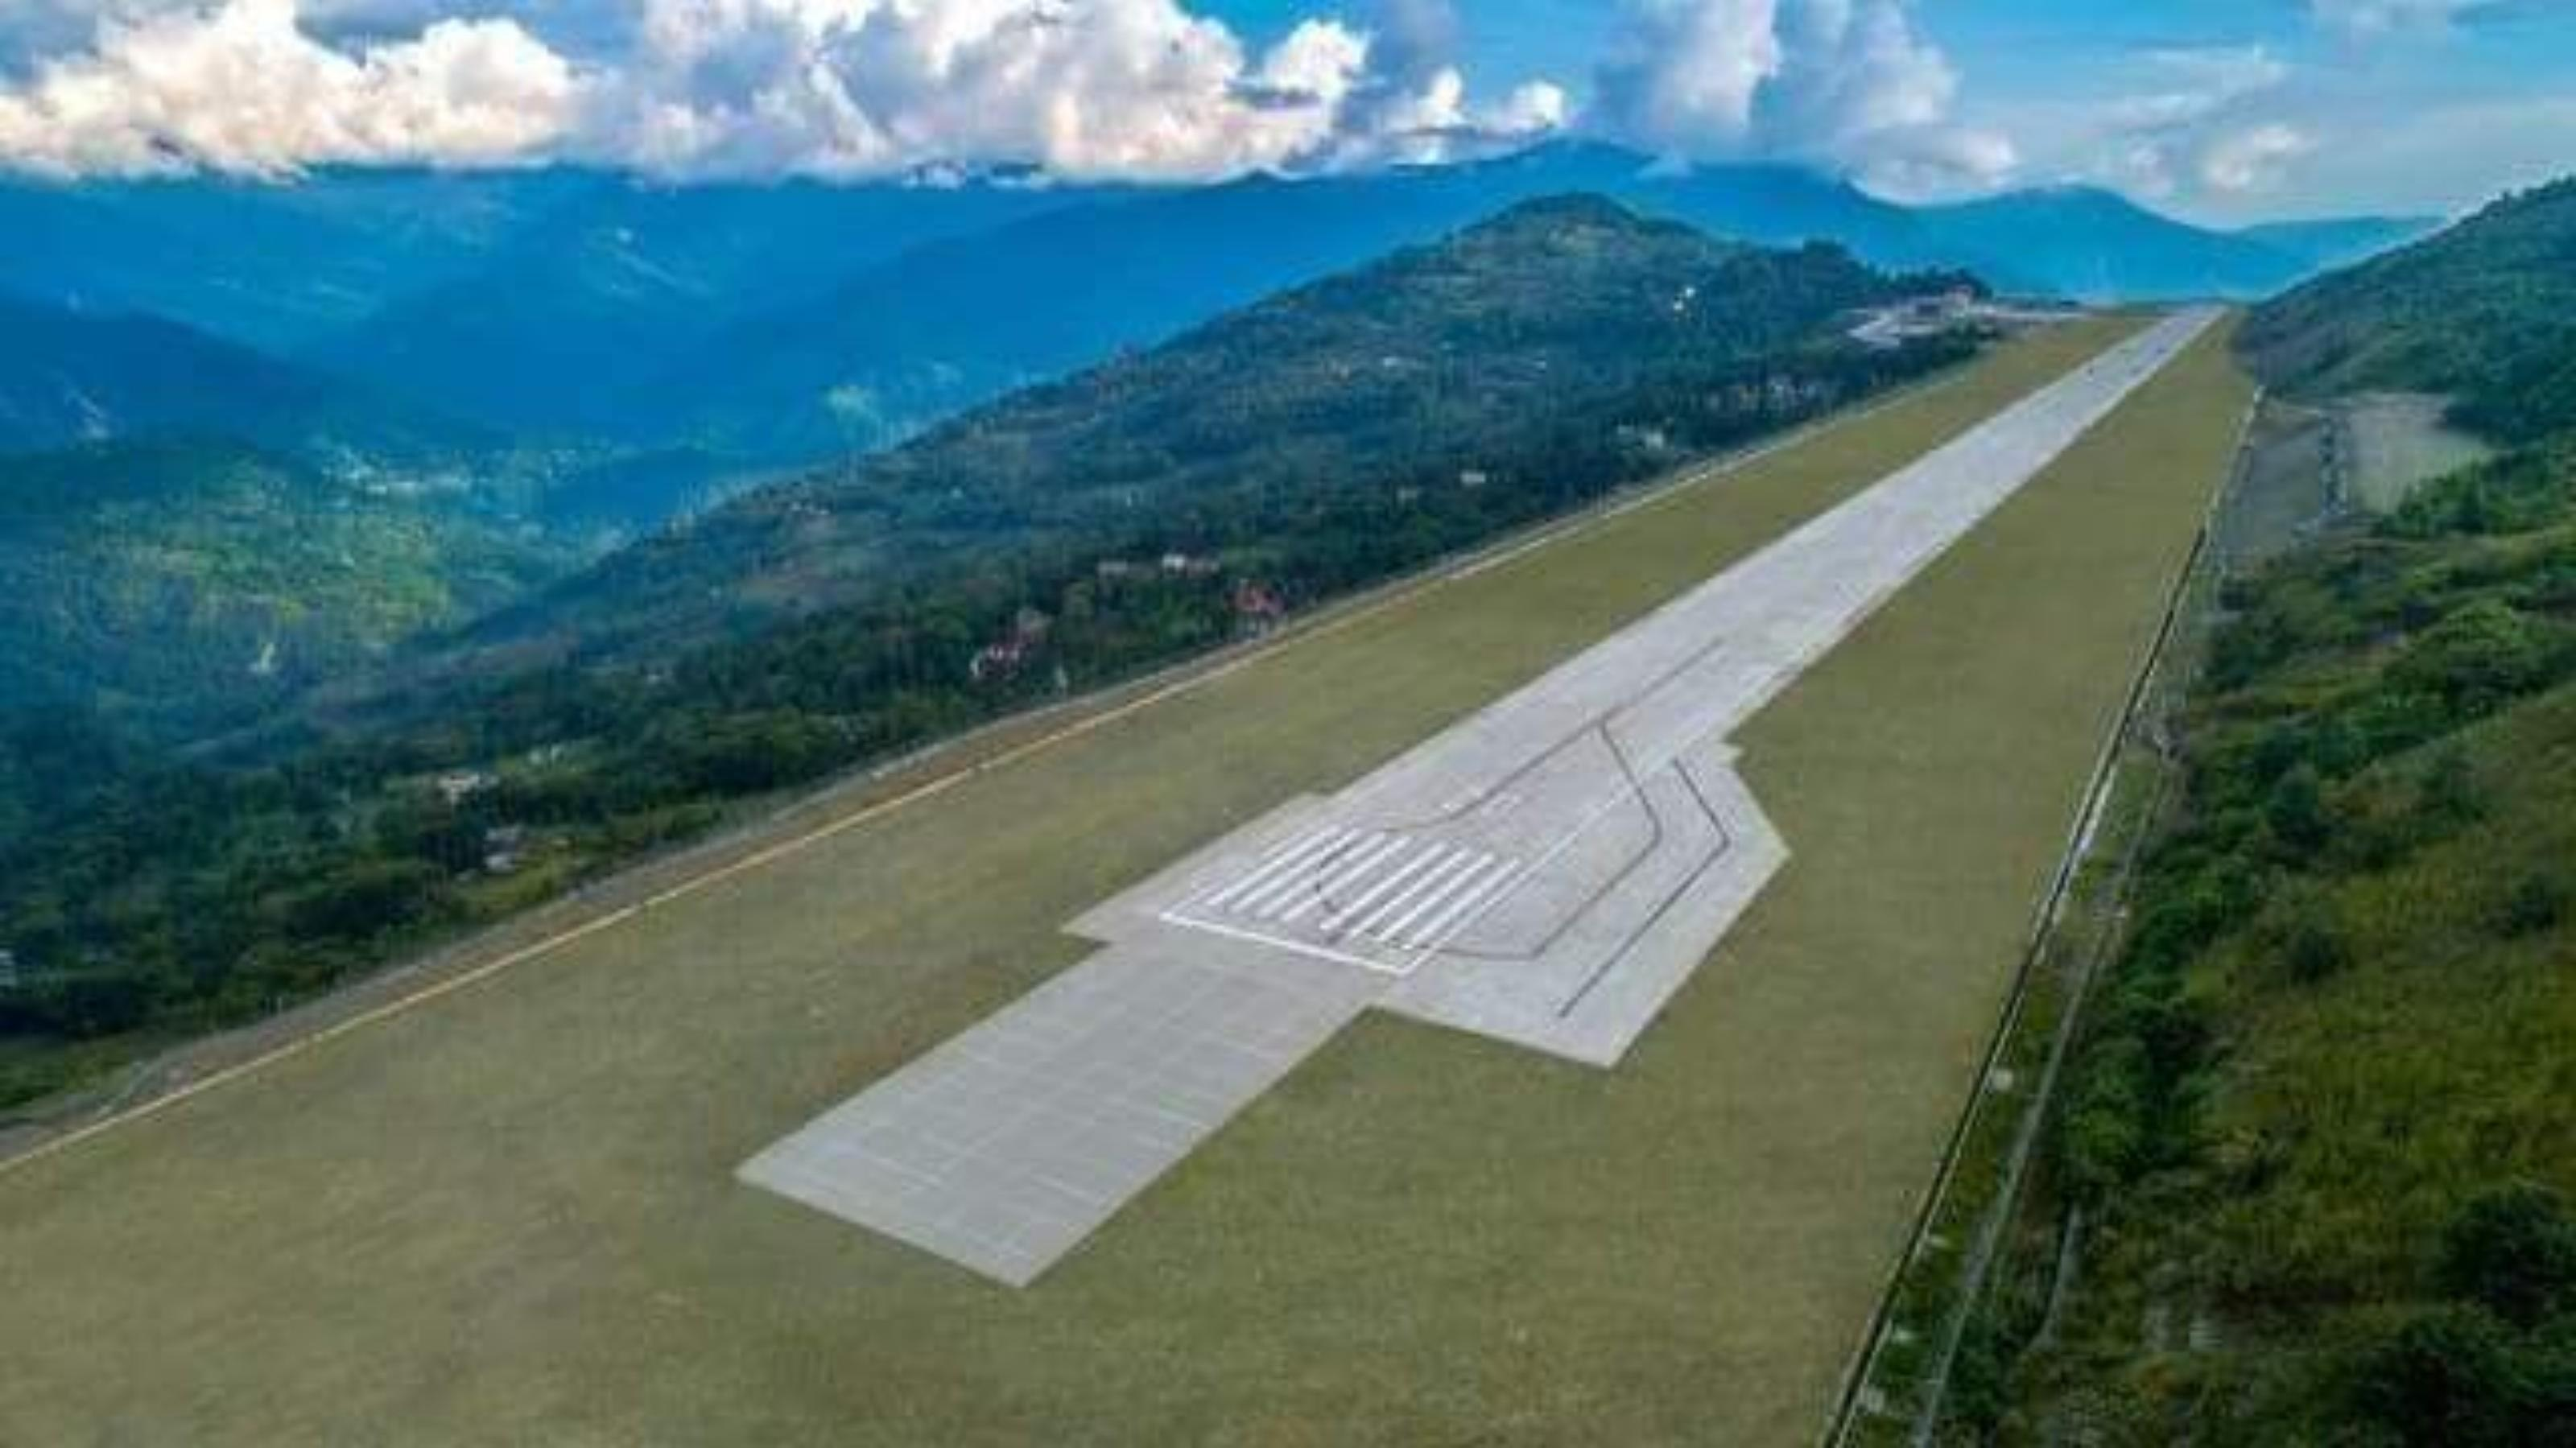 Sikkim gets her first airport as PM inaugurates Pakyong airport